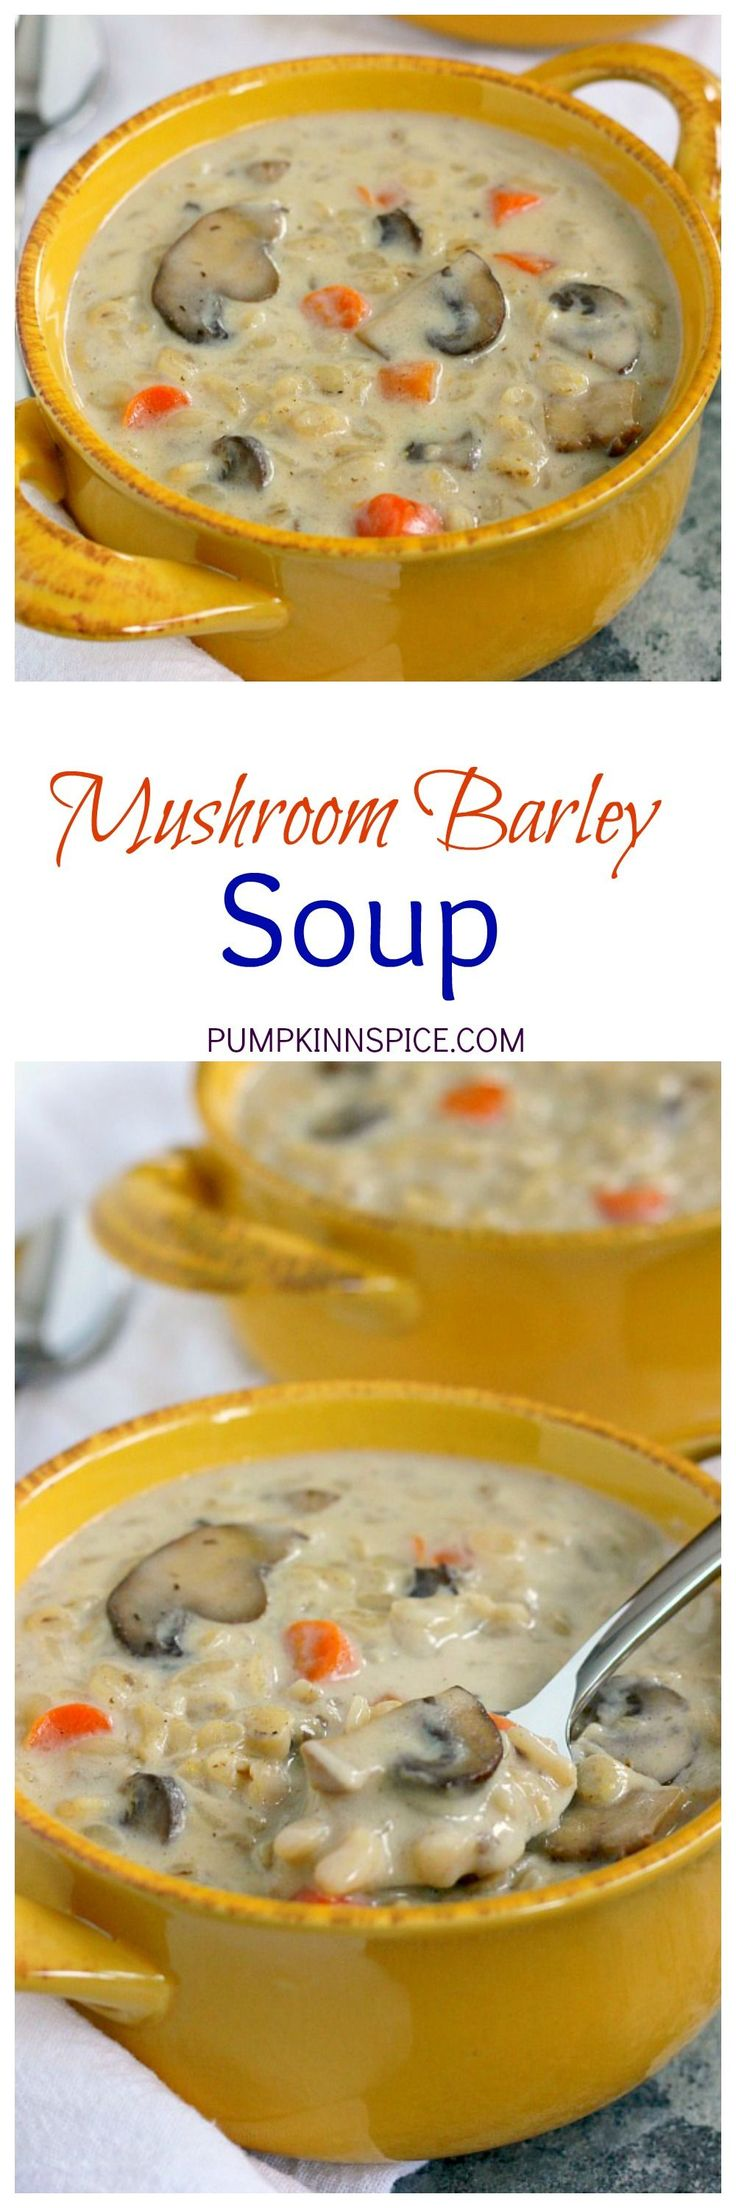 This Mushroom Barley Soup is packed with flavor and is ready in just 30 minutes. Featuring tender mushrooms and barley in a rich and creamy broth, this soup is perfect for busy weeknights!